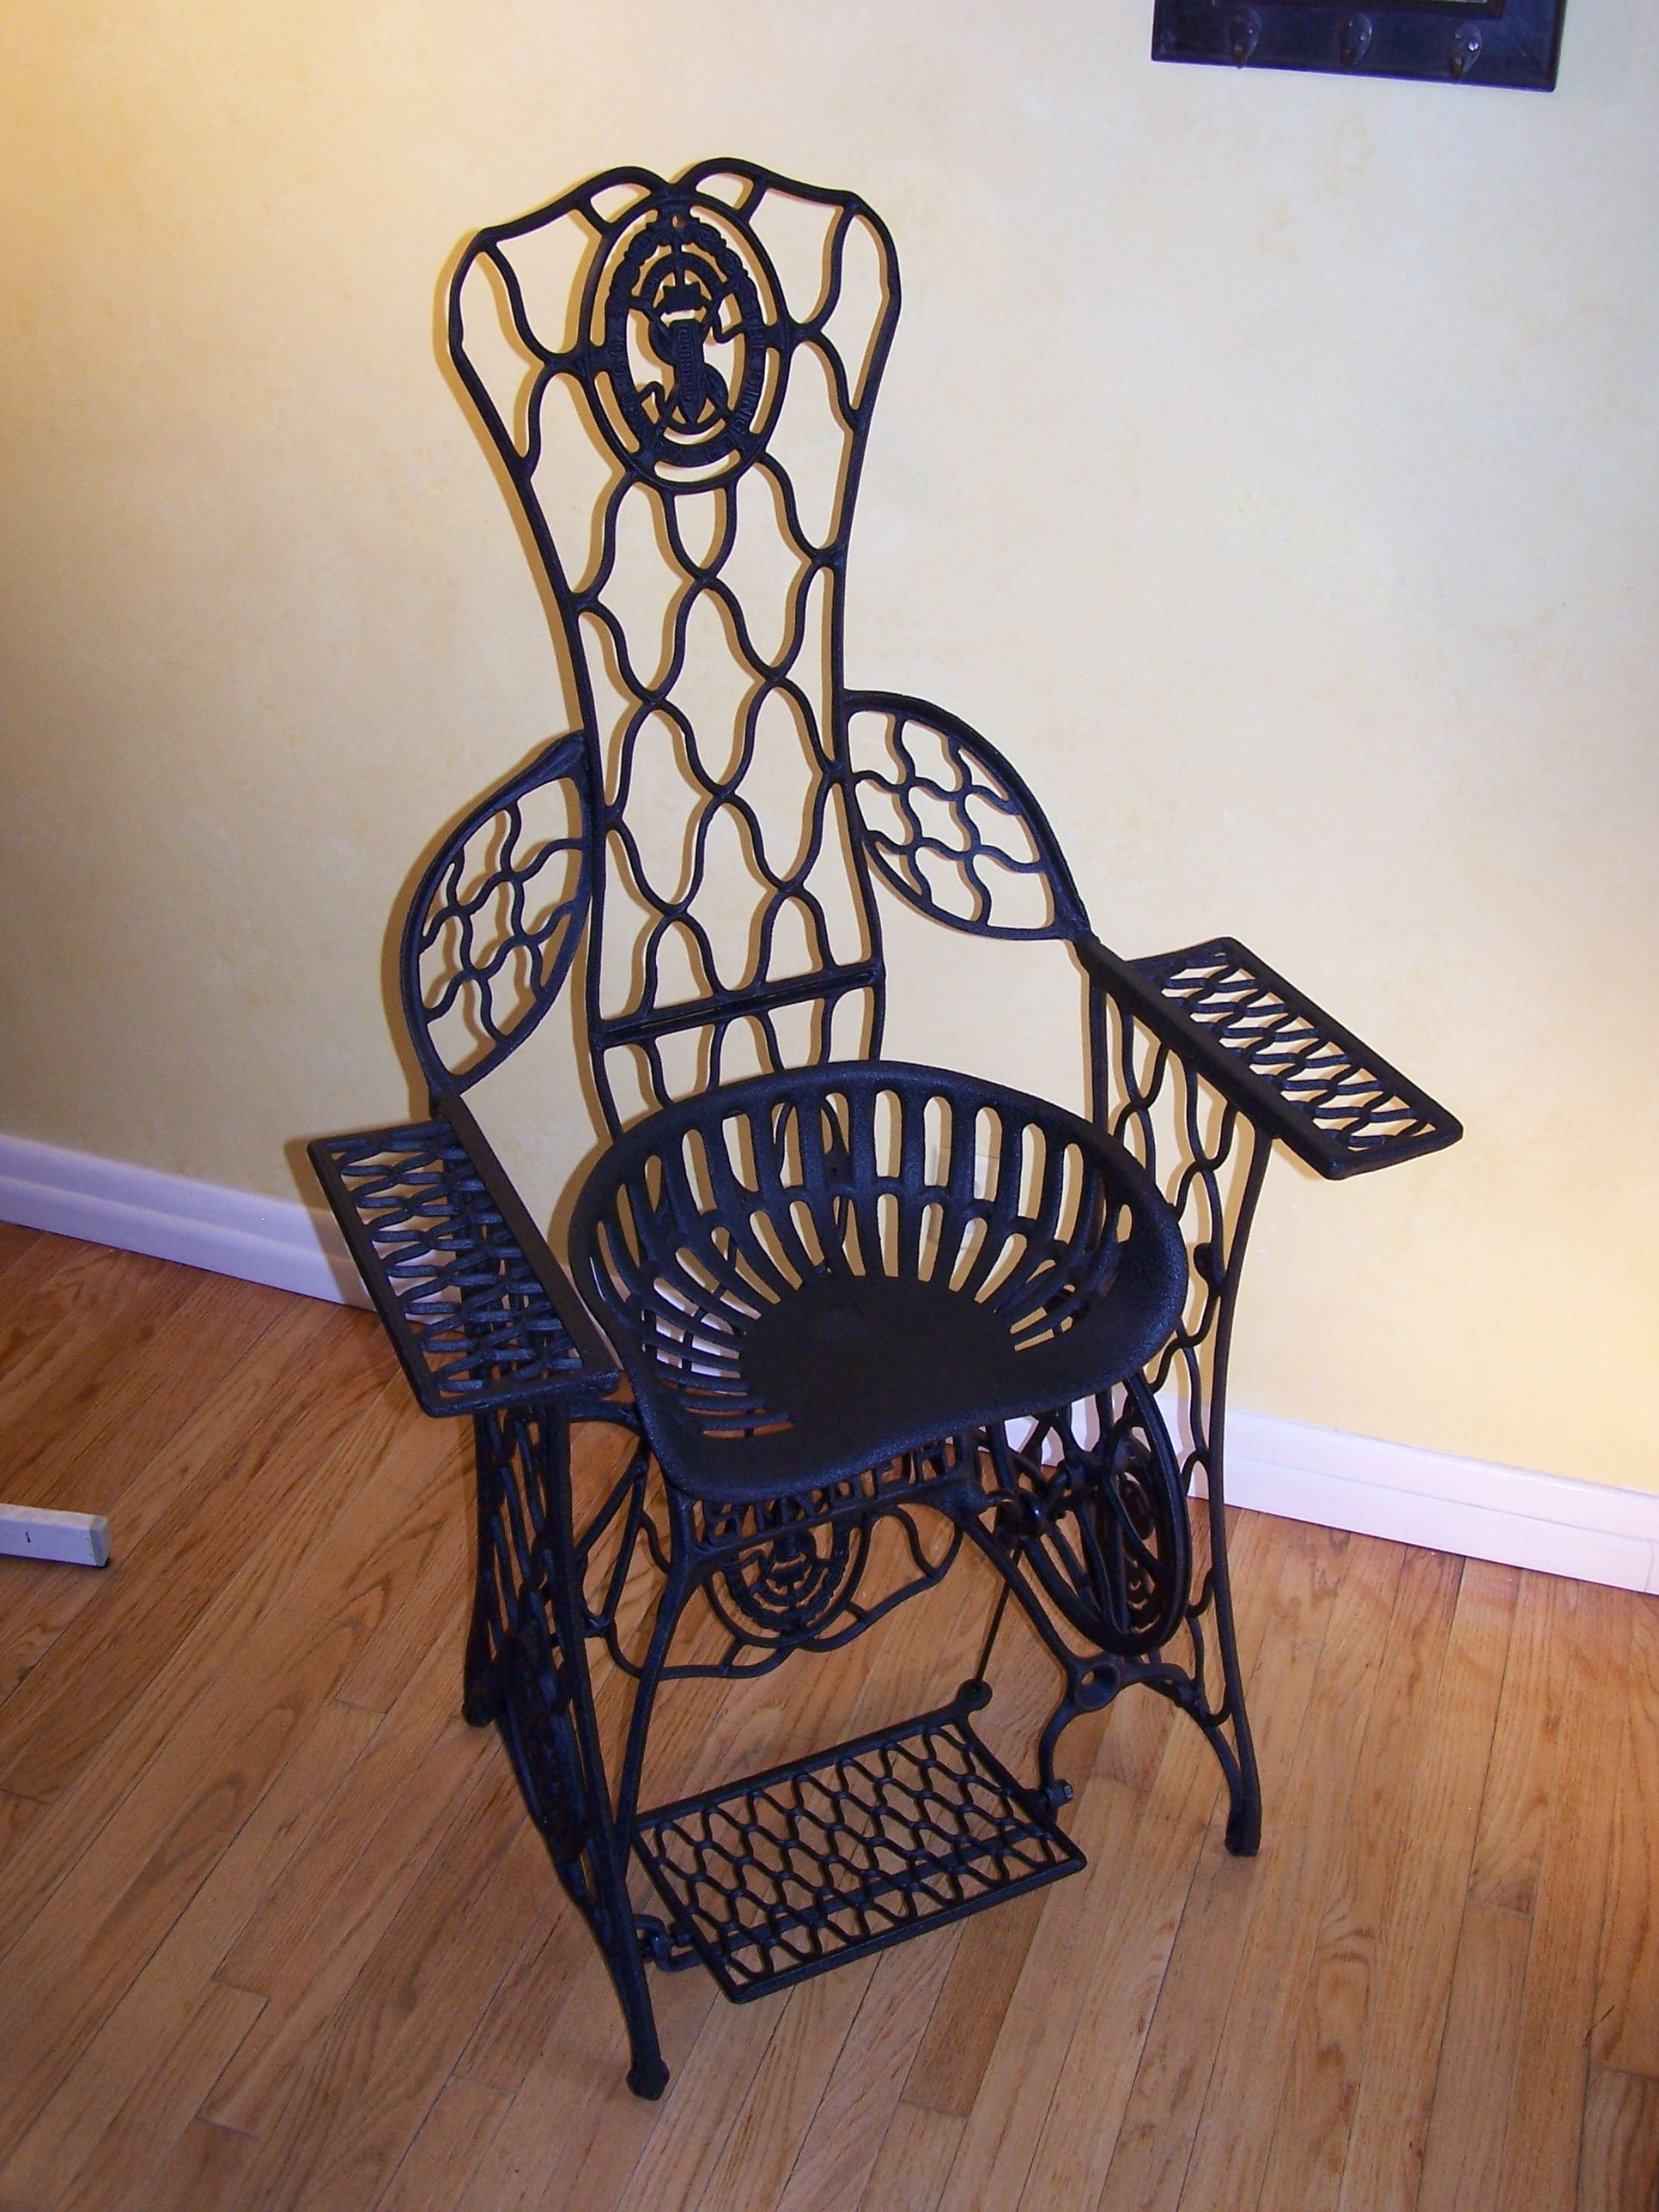 Furniture For Sale Steampunked Chair Of Art Repurposed  # Muebles Tio Sam